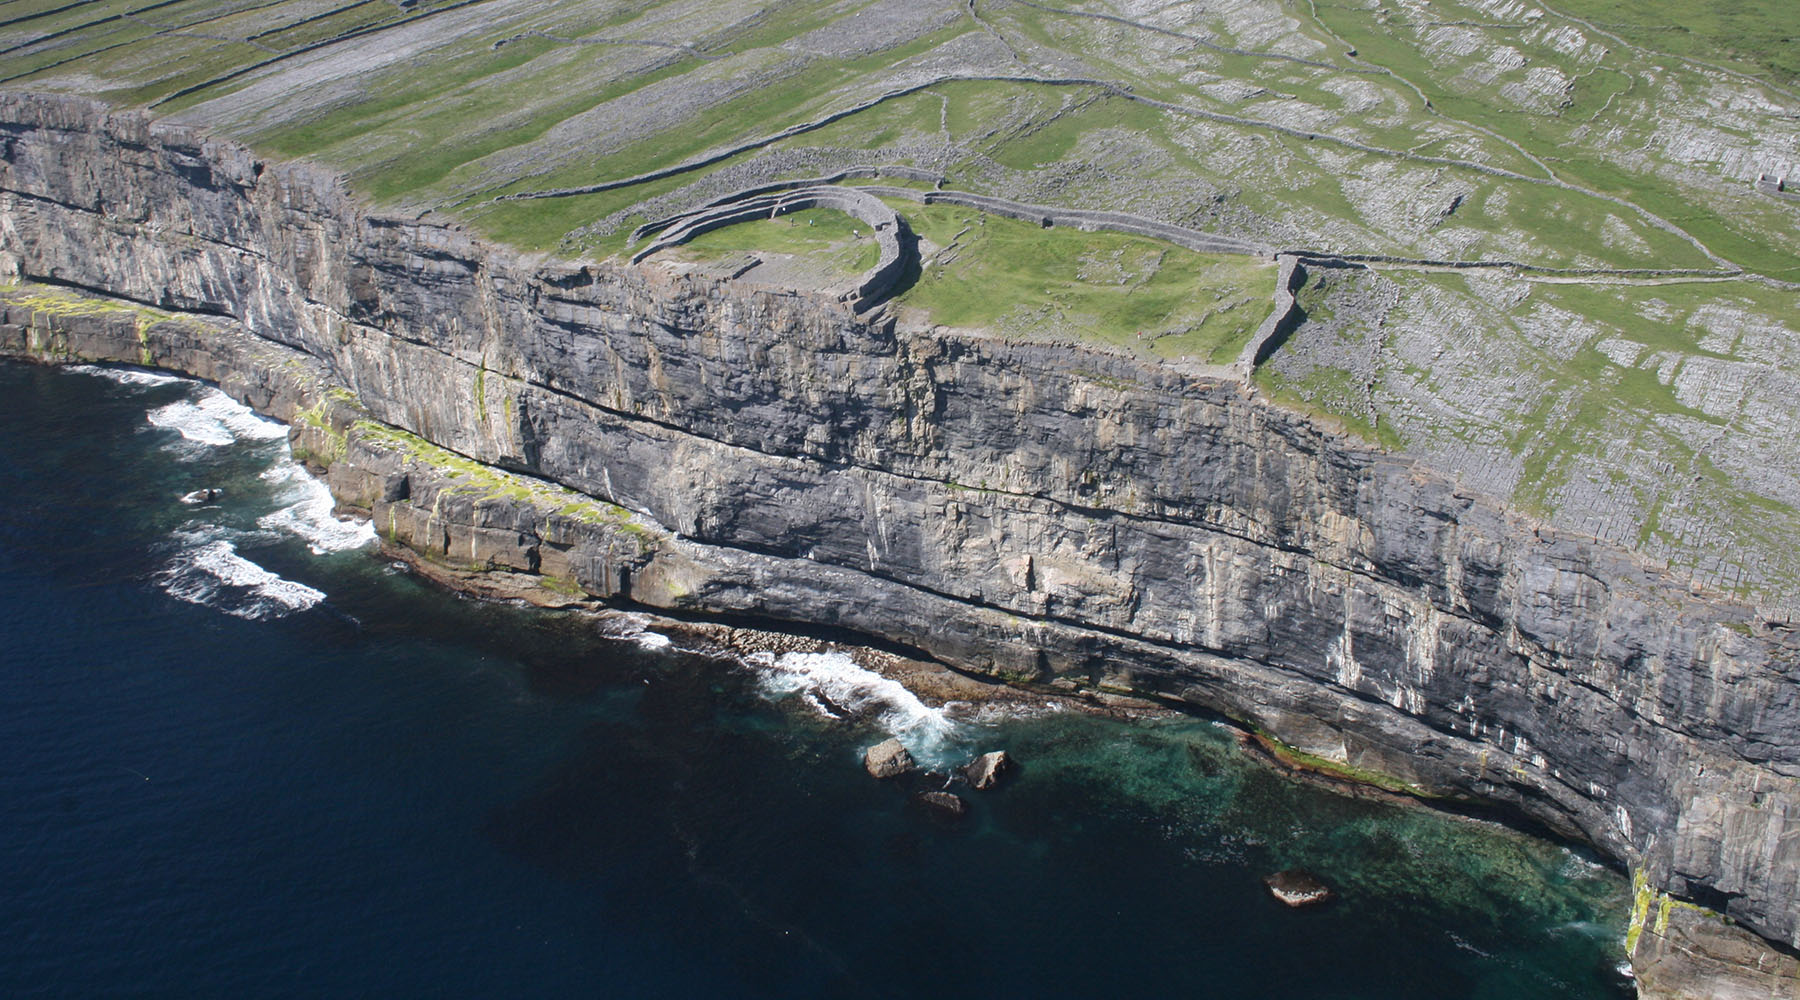 Inis Mor (Inishmore) Island, The Aran Islands, Co Galway